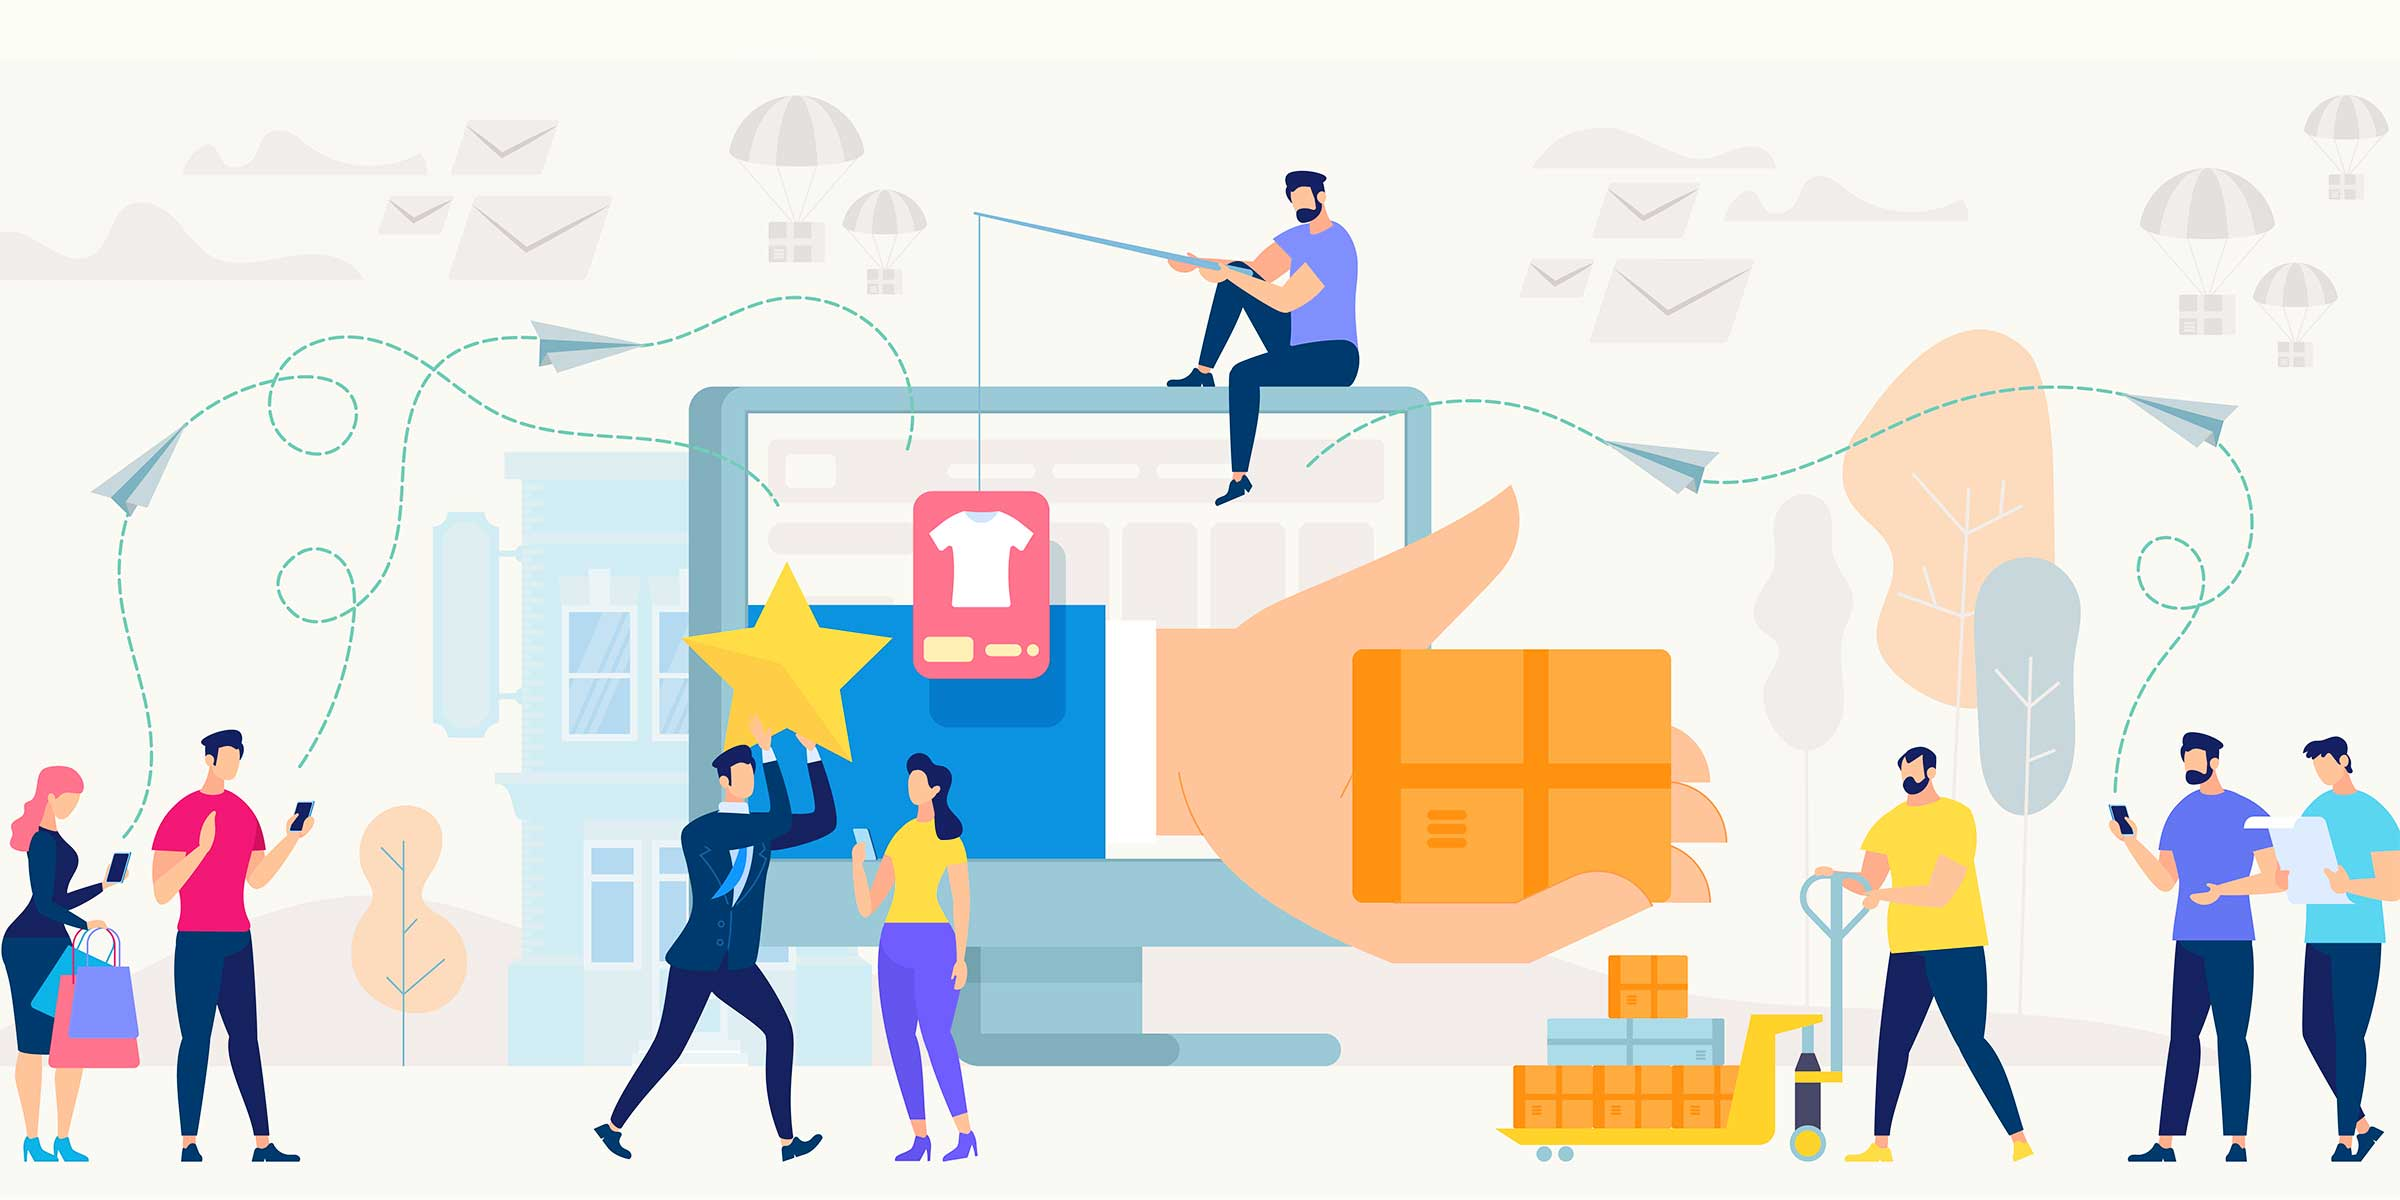 5 e-commerce trends to look forward to in 2020